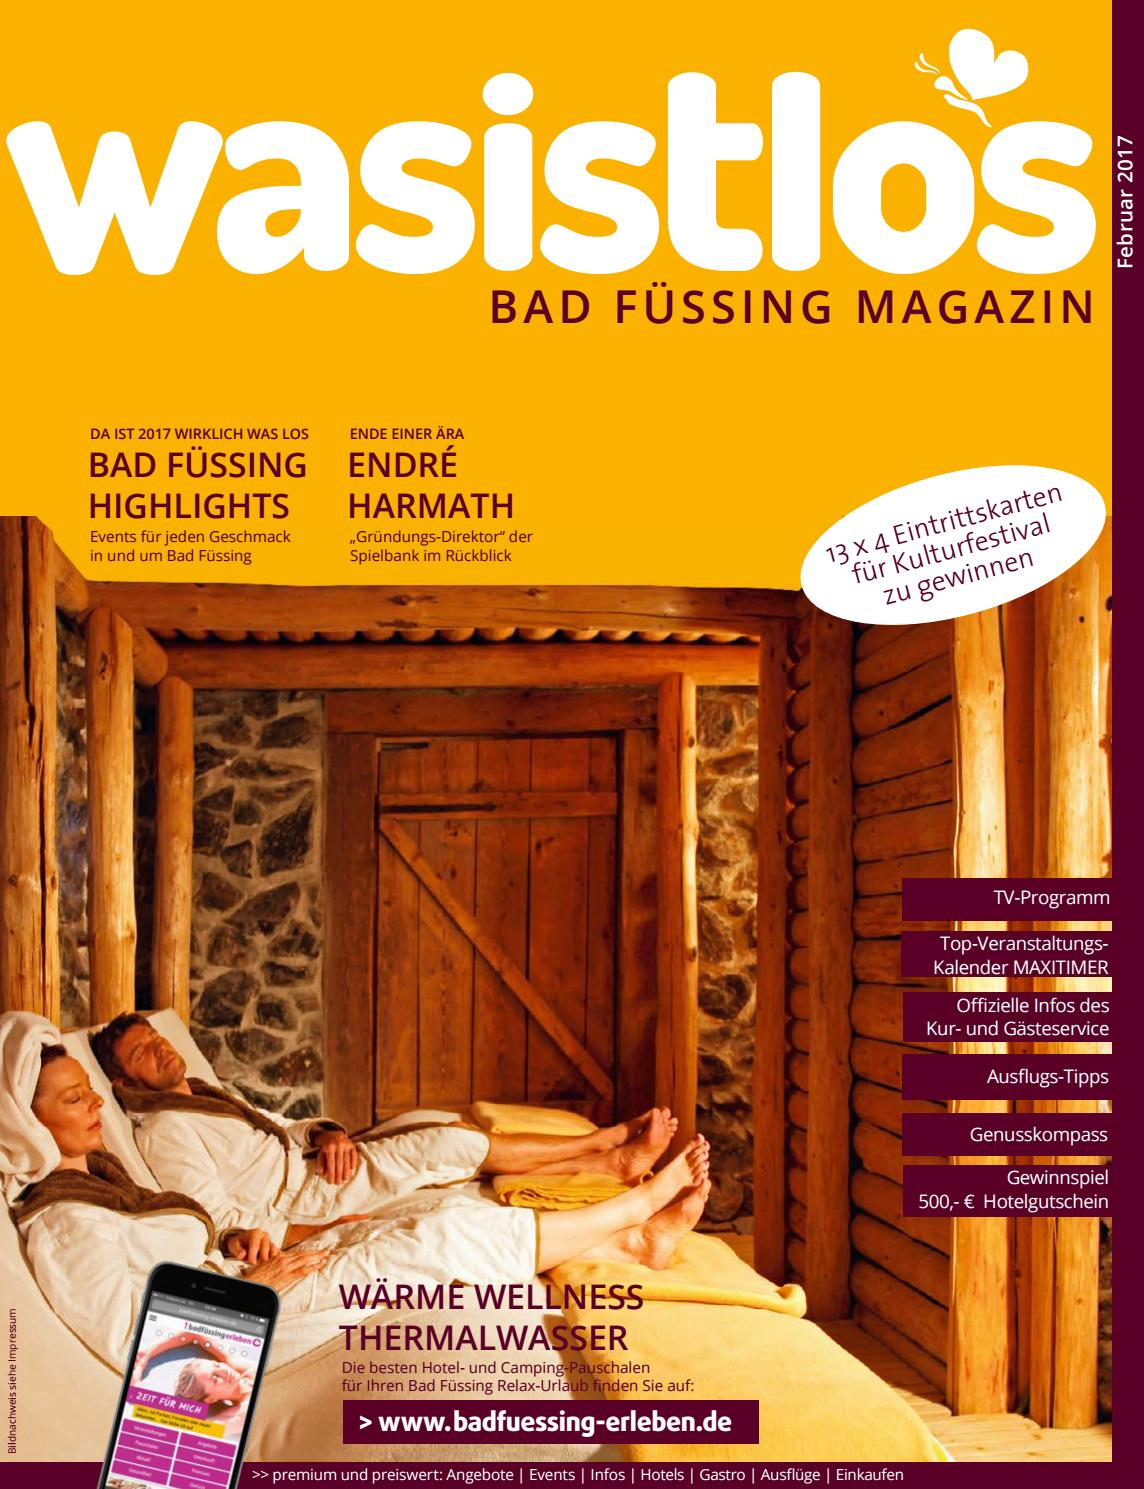 Wasistlos Bad Fuessing Magazin Februar 2017 by remark marketing + ...